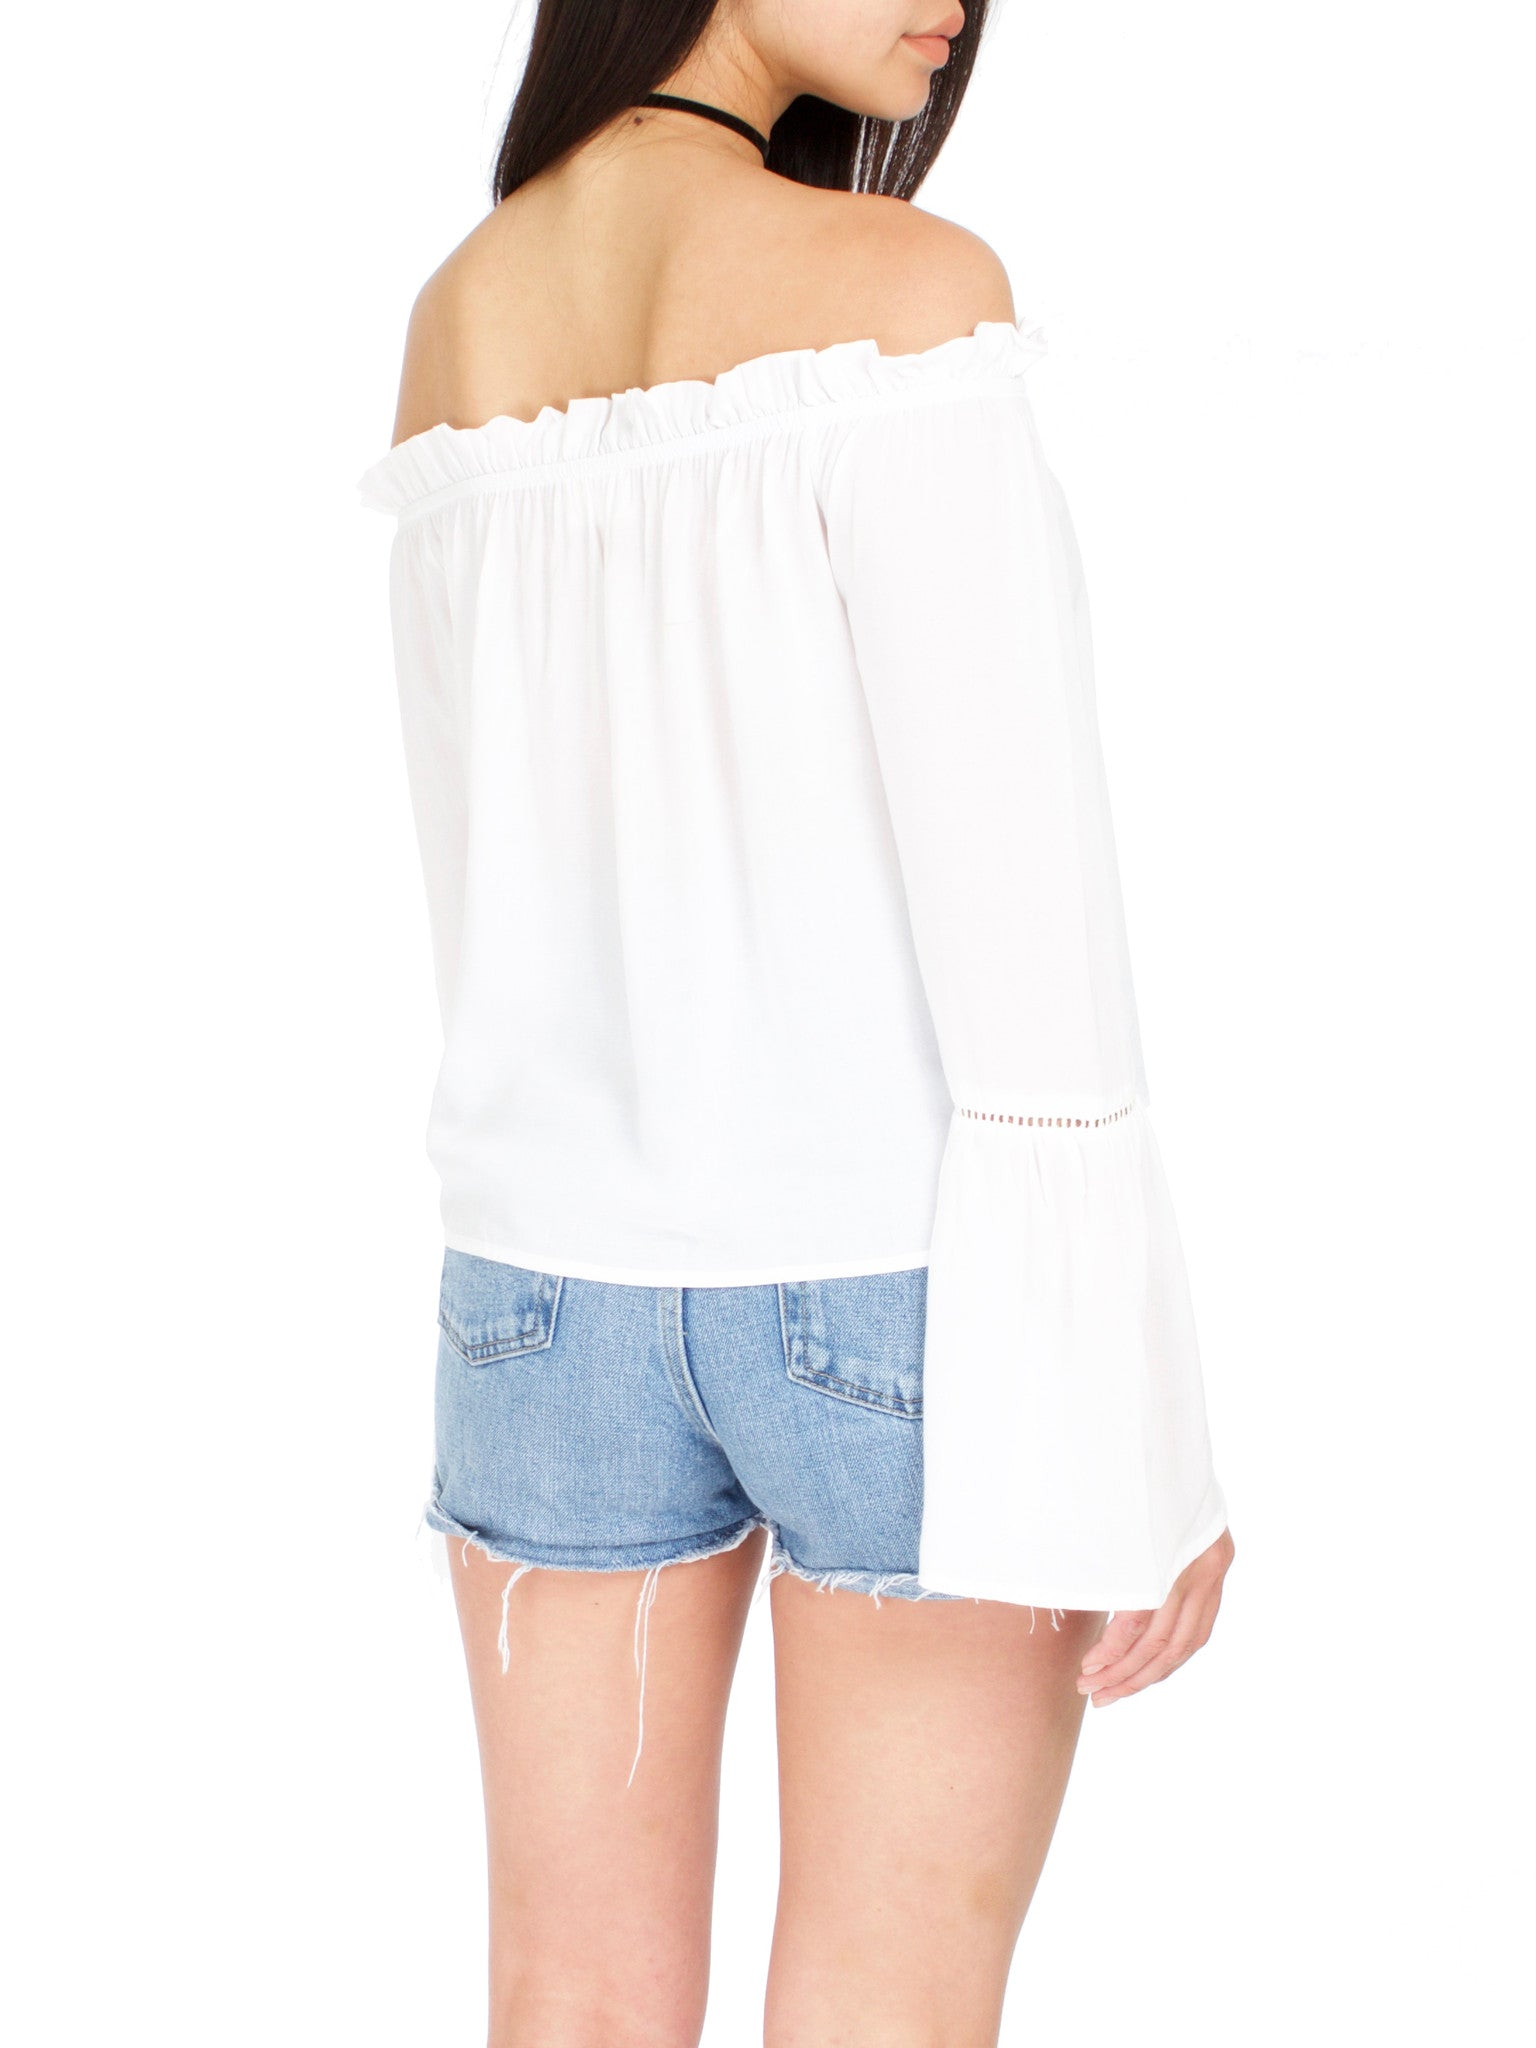 Mykonos Off The Shoulder Top - PRADEGAL